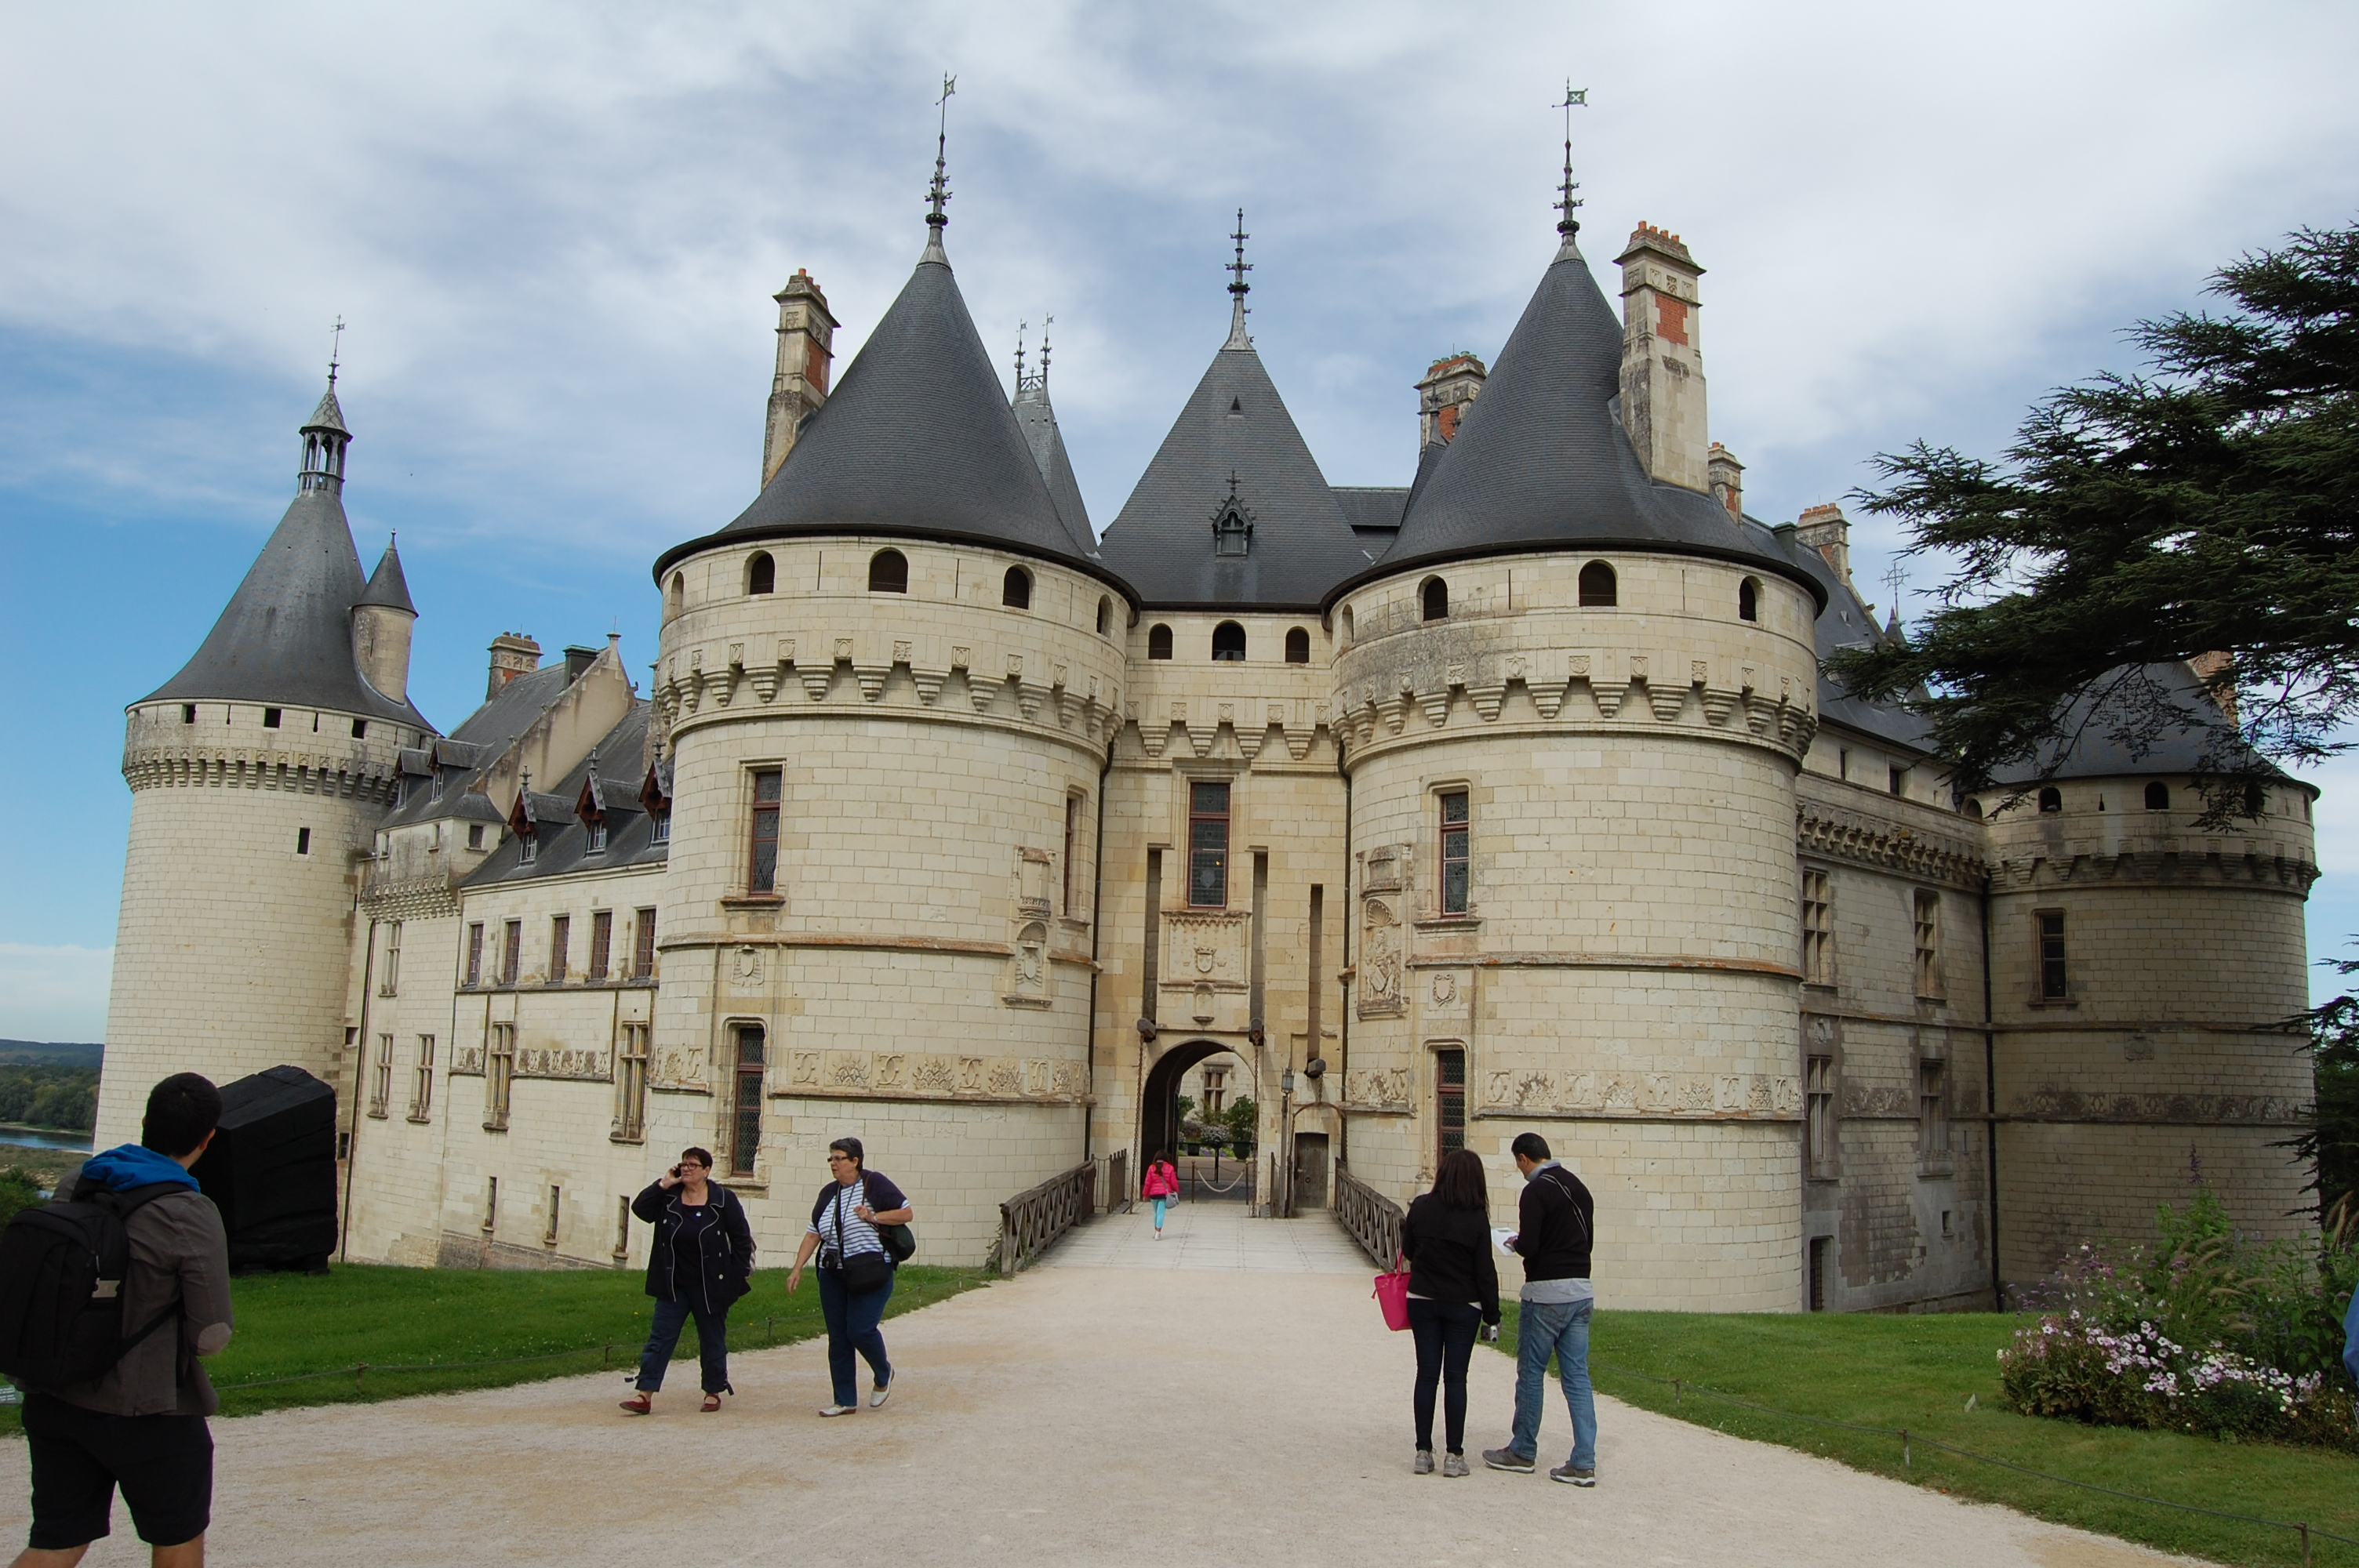 Préférence Ignoring 'No Entry' Signs at Chateau de Chaumont – gardeninacity KL64